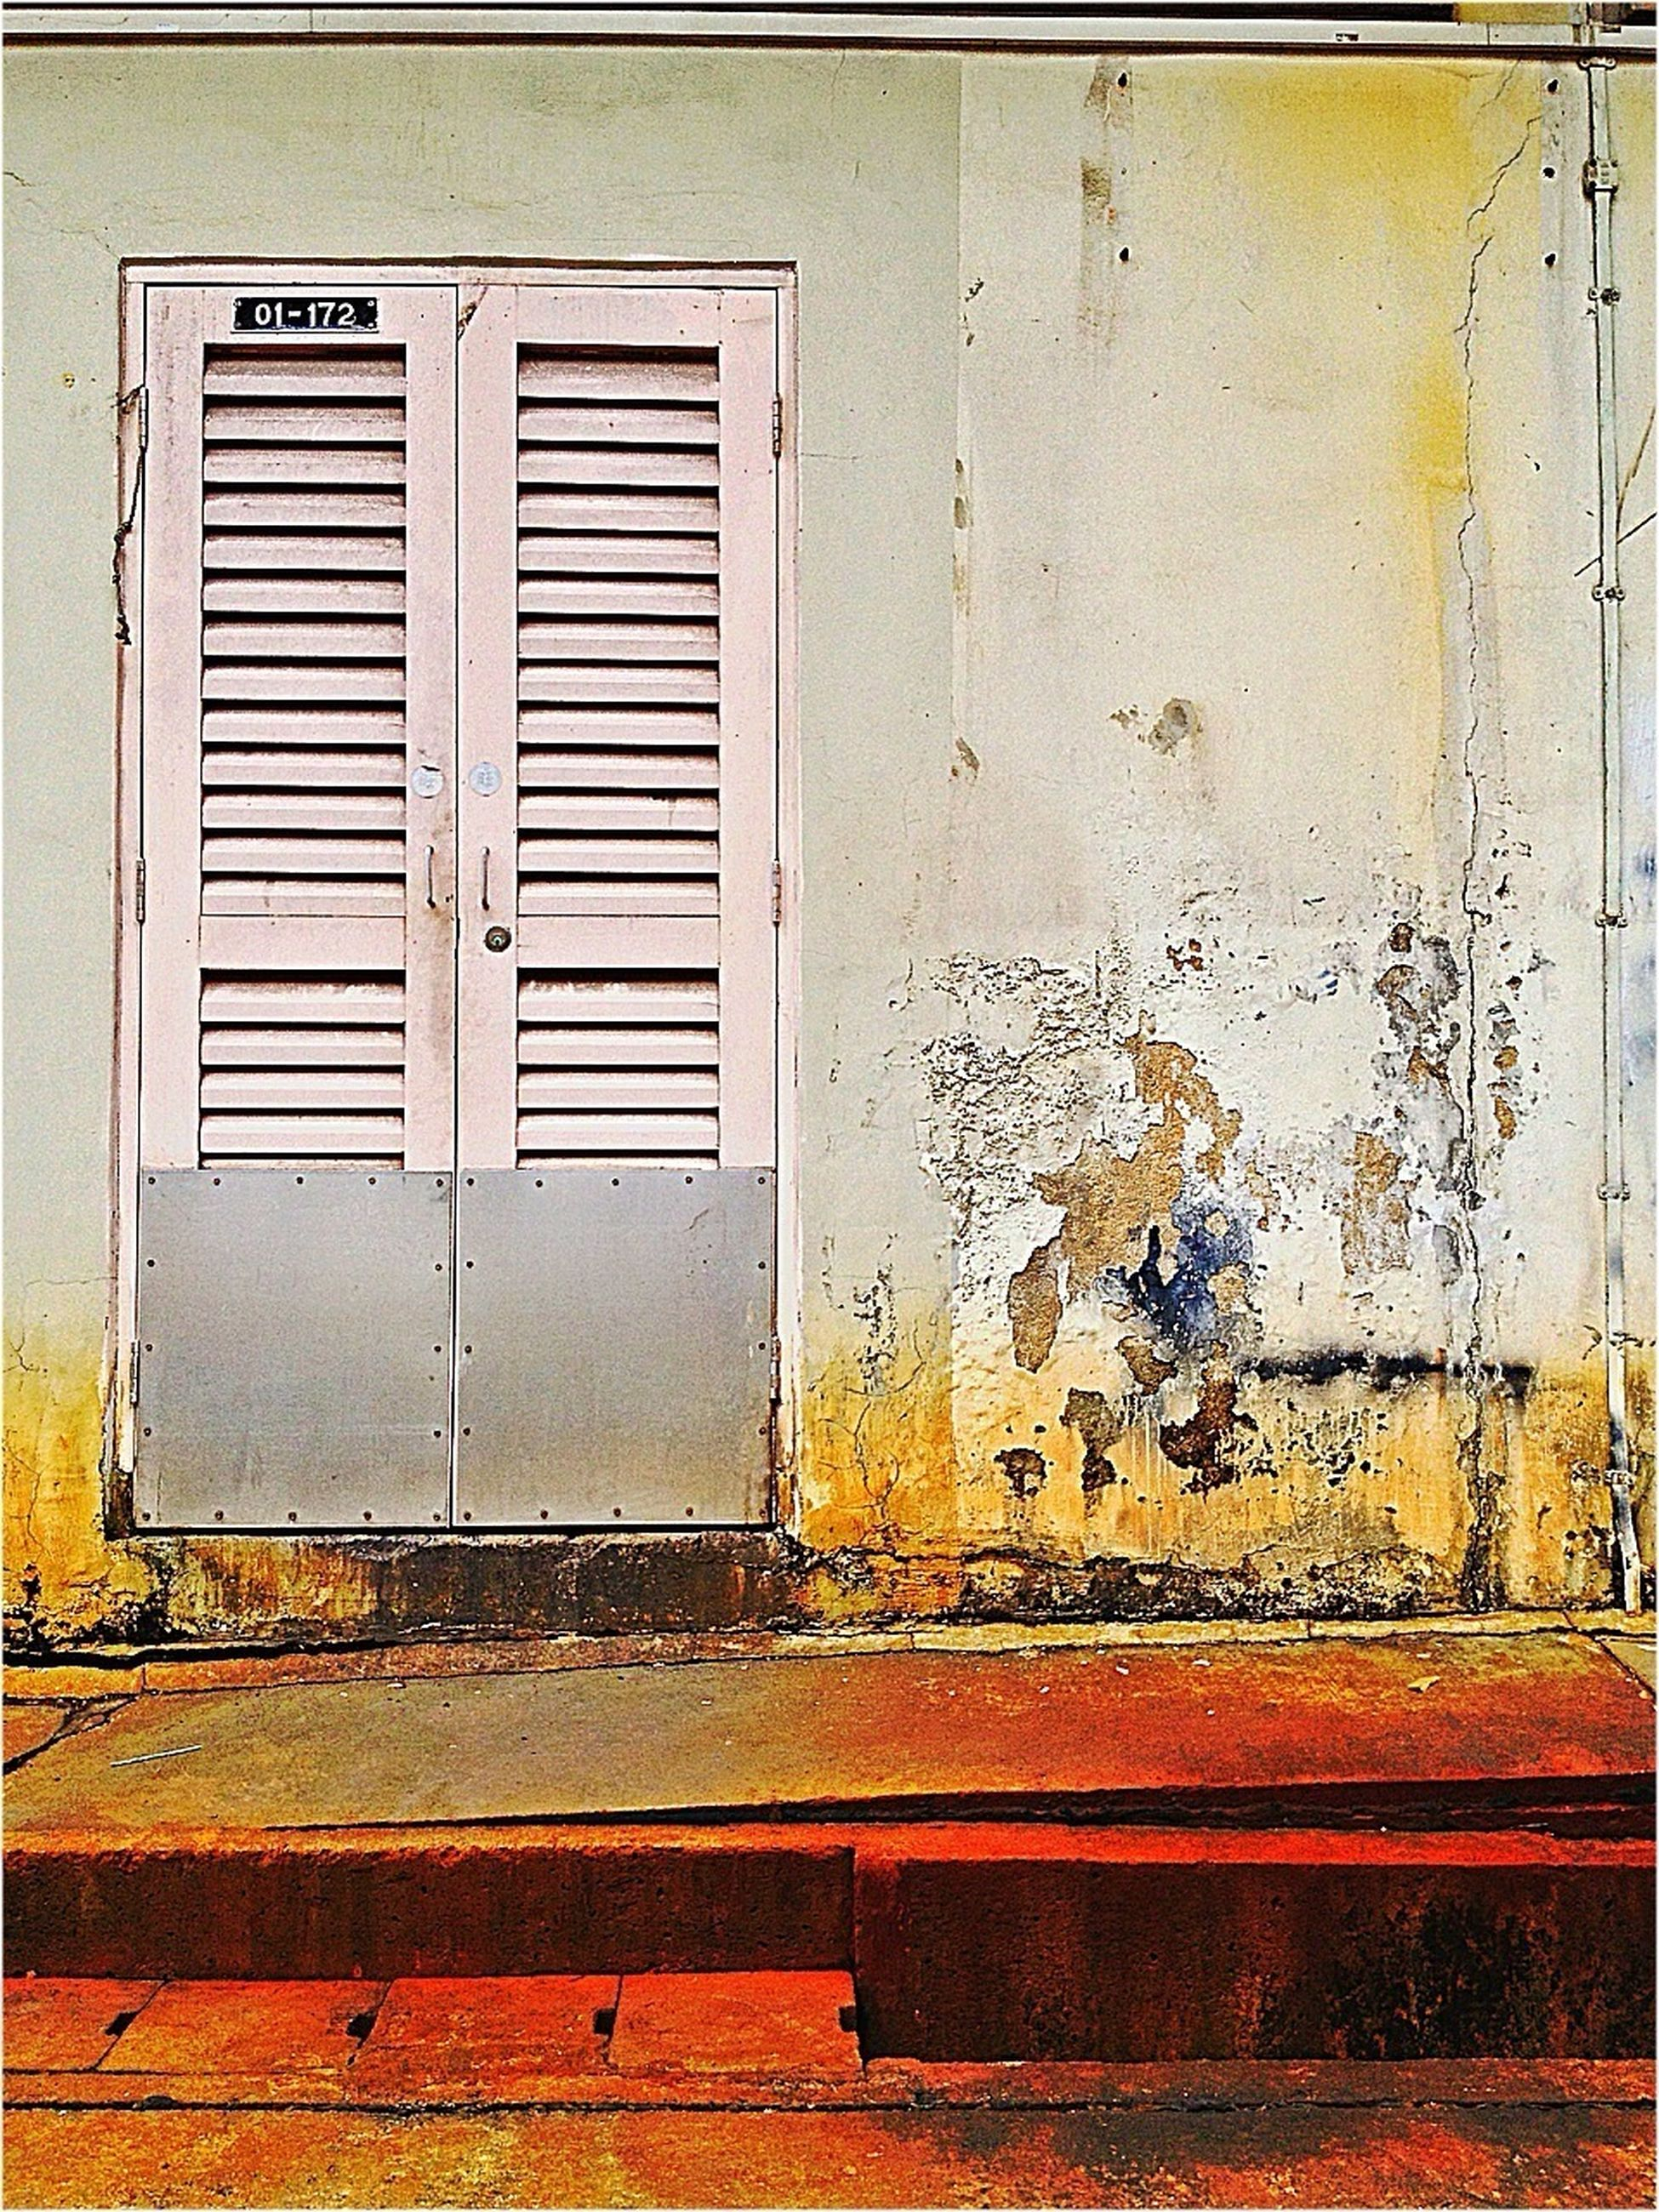 building exterior, door, built structure, architecture, closed, wall - building feature, house, shutter, window, weathered, wall, entrance, old, safety, protection, wood - material, brick wall, security, front door, closed door